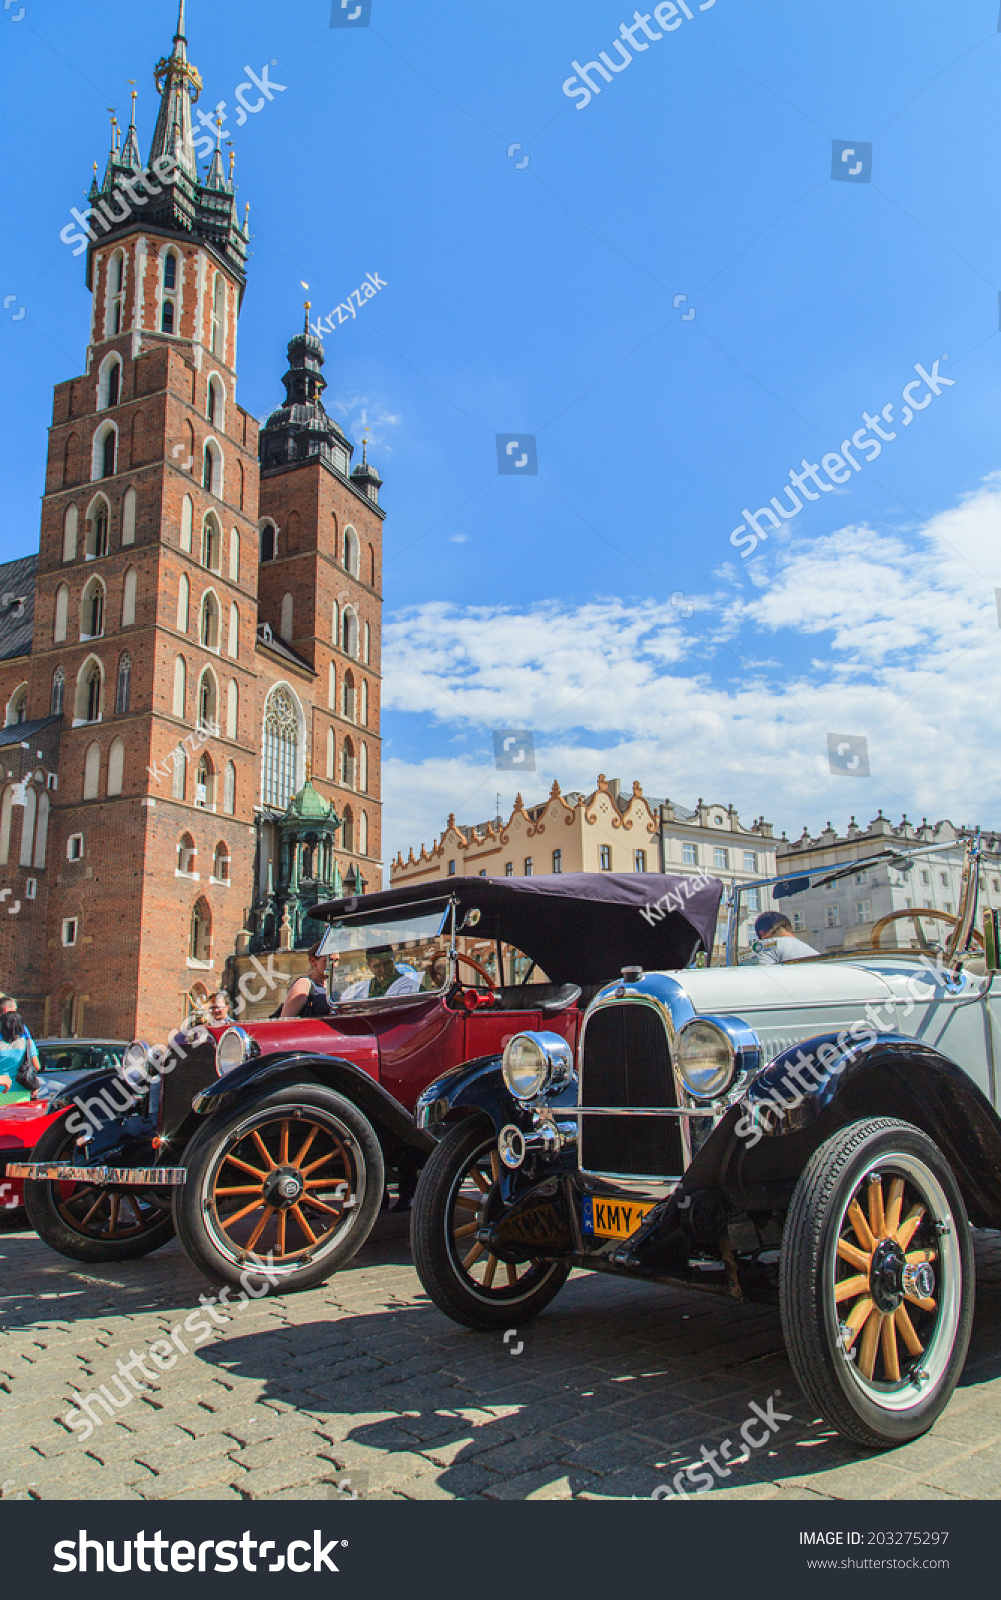 Cracow July 6 Classic Car On Stock Photo 203275297 - Shutterstock